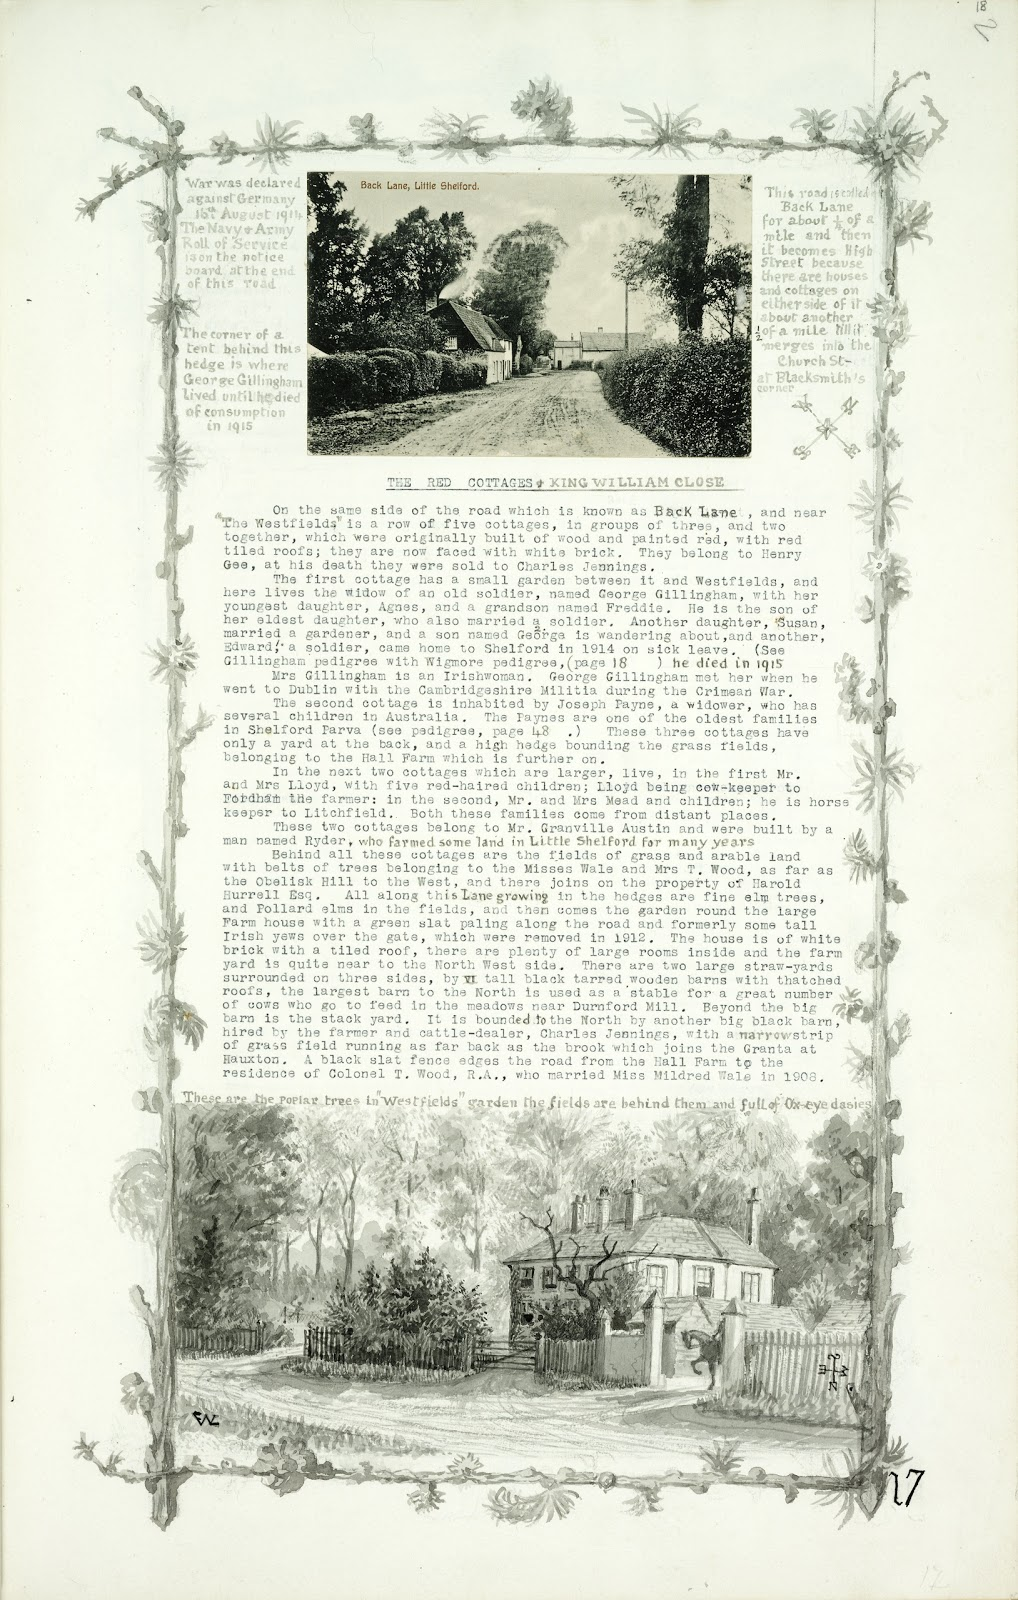 A Record of Shelford Parva by Fanny Wale P17 fo. 18, page 17: At the top of the page is a postcard of Little Shelford Back Lane, c. 1910 A description of Red cottages and King William close below. At the bottom is a black and white watercolour of 'Westfields' a house in Little Shelford. A watercolour of foliage borders the page. [fo.17]